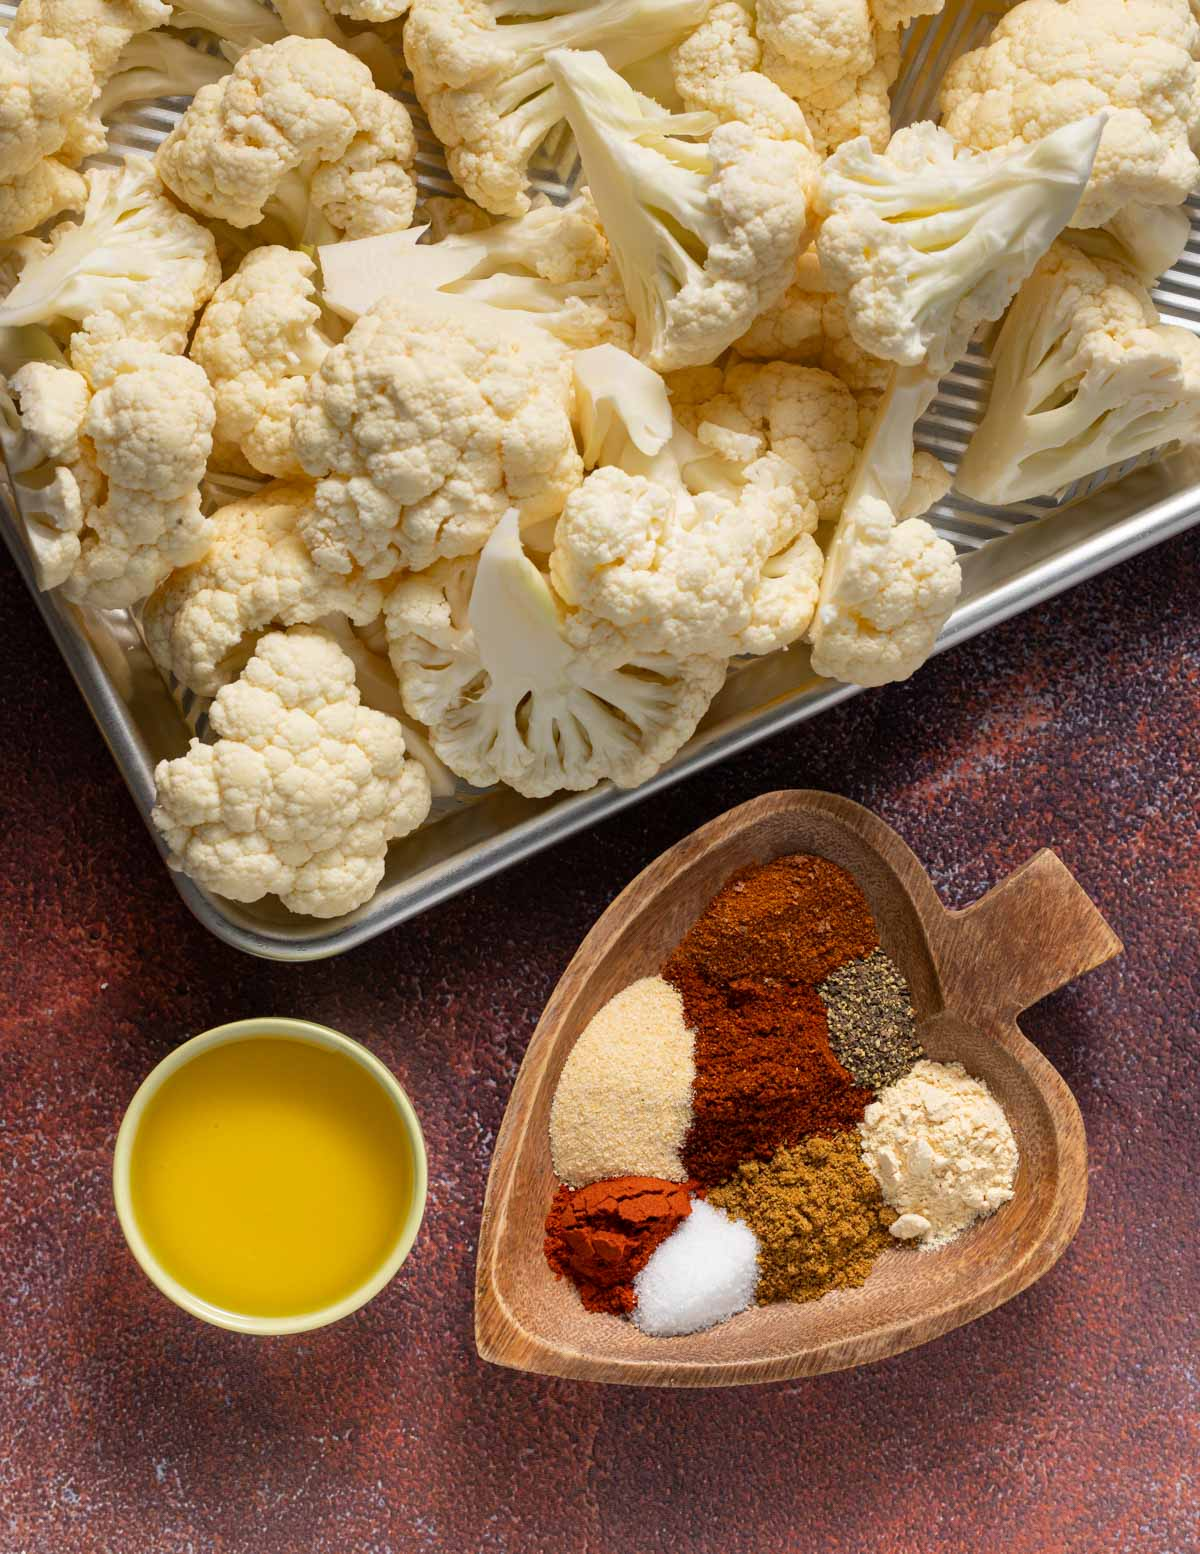 cauliflower florets, oil and spices